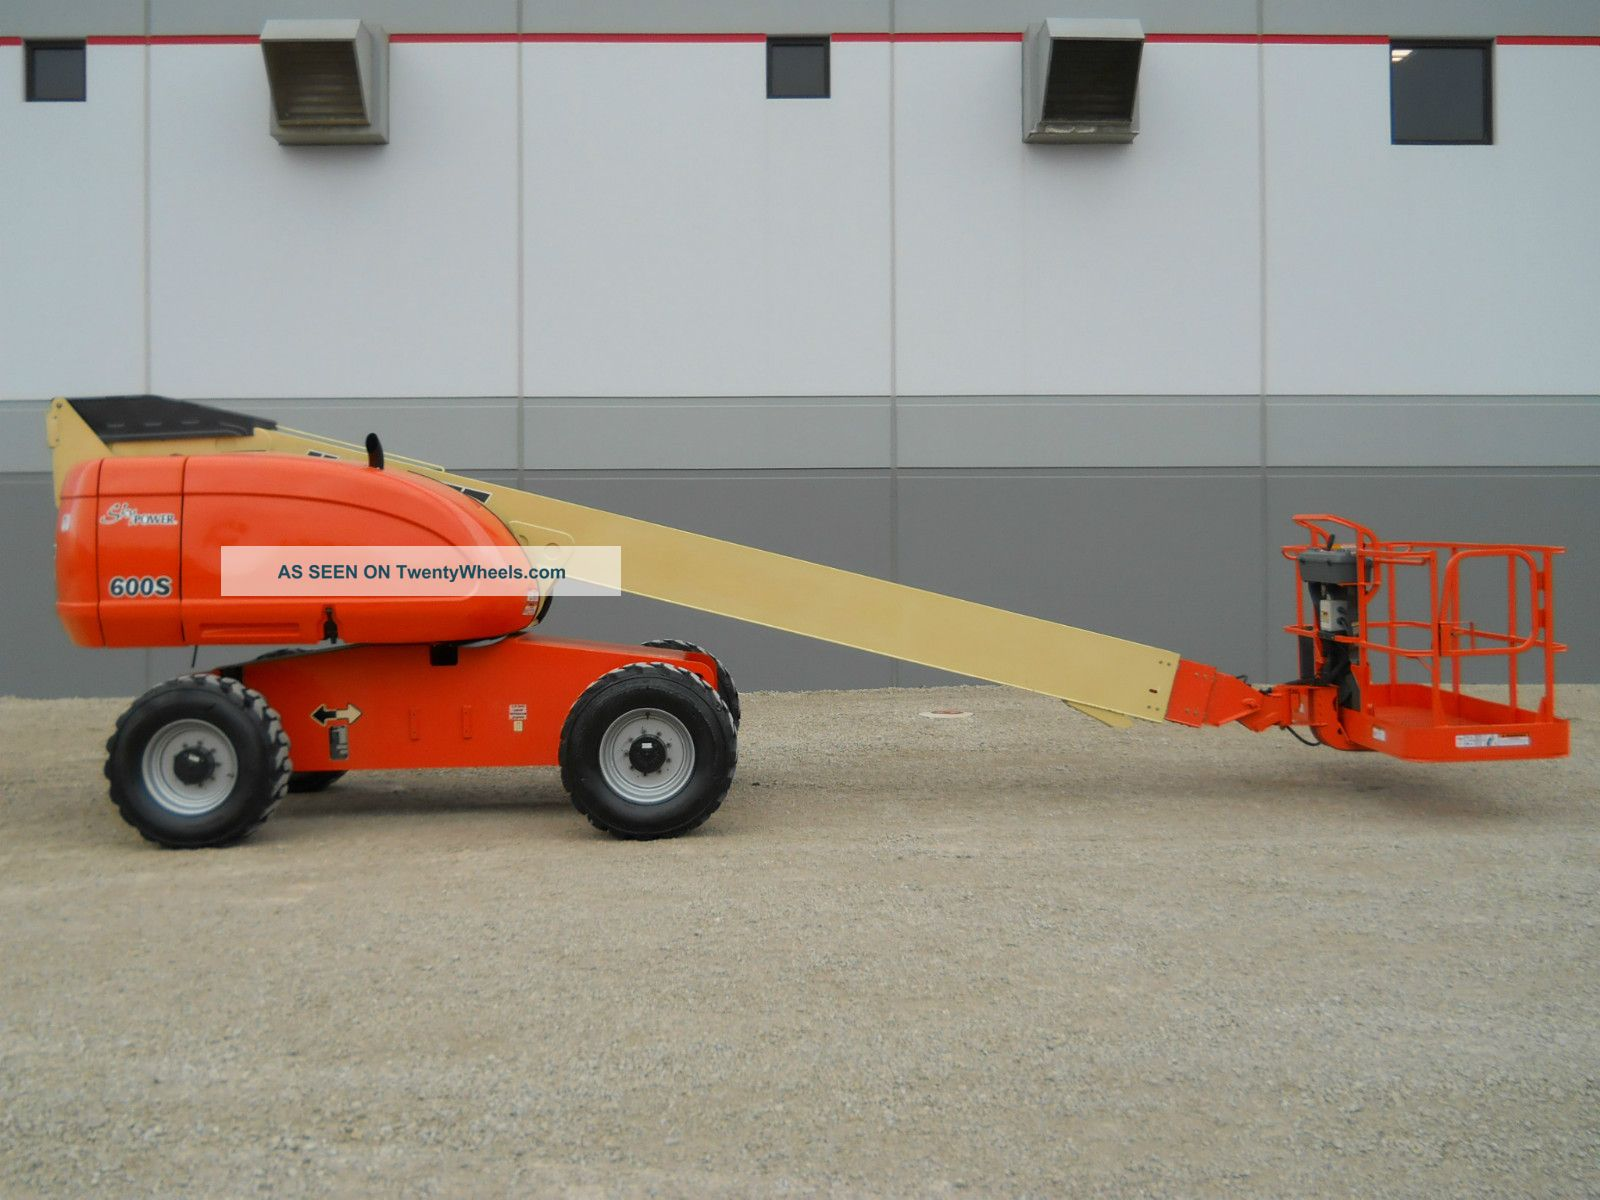 05 ' Jlg 600s Aerial Manlift Boom Lift Boomlift Duel Fuel Man Telescopic Basket Lifts photo